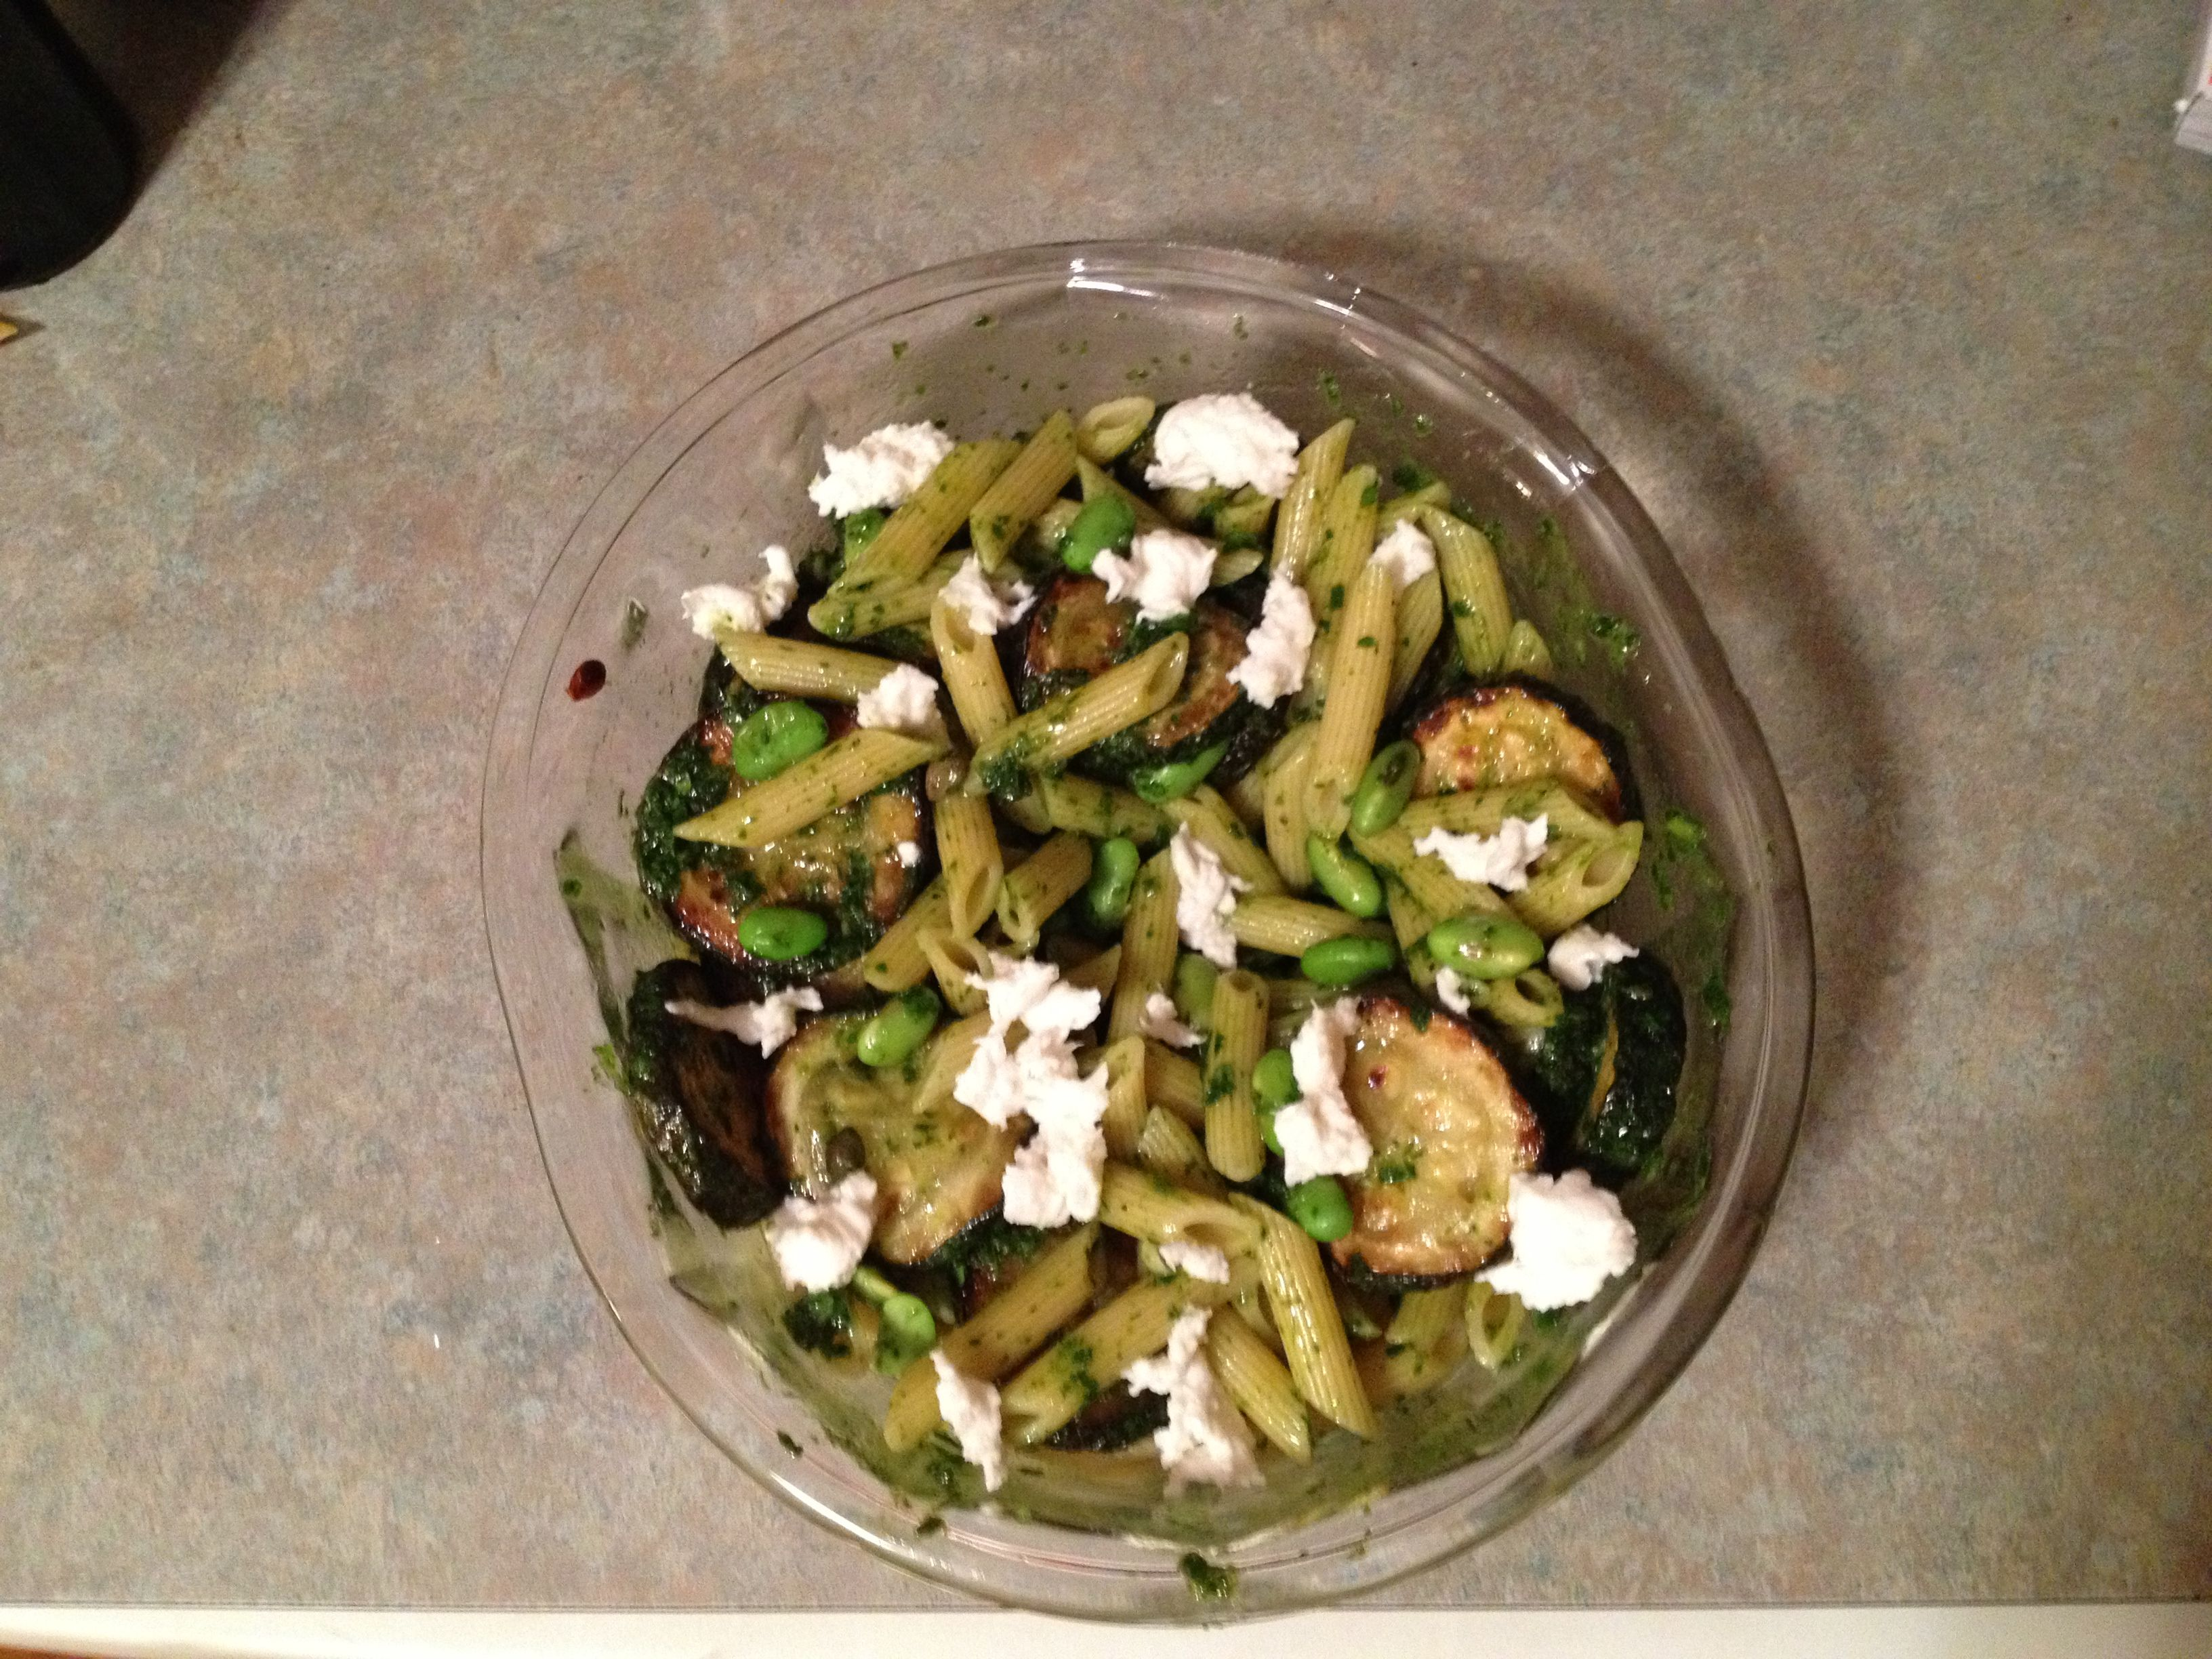 """Pasta and Fried Zucchini Salad"" from the cookbook Plenty by Yotam Ottolenghi.    Highly recommend trying this recipe if you like zucchini and edamame!  http://meredithbythelake.blogspot.com"